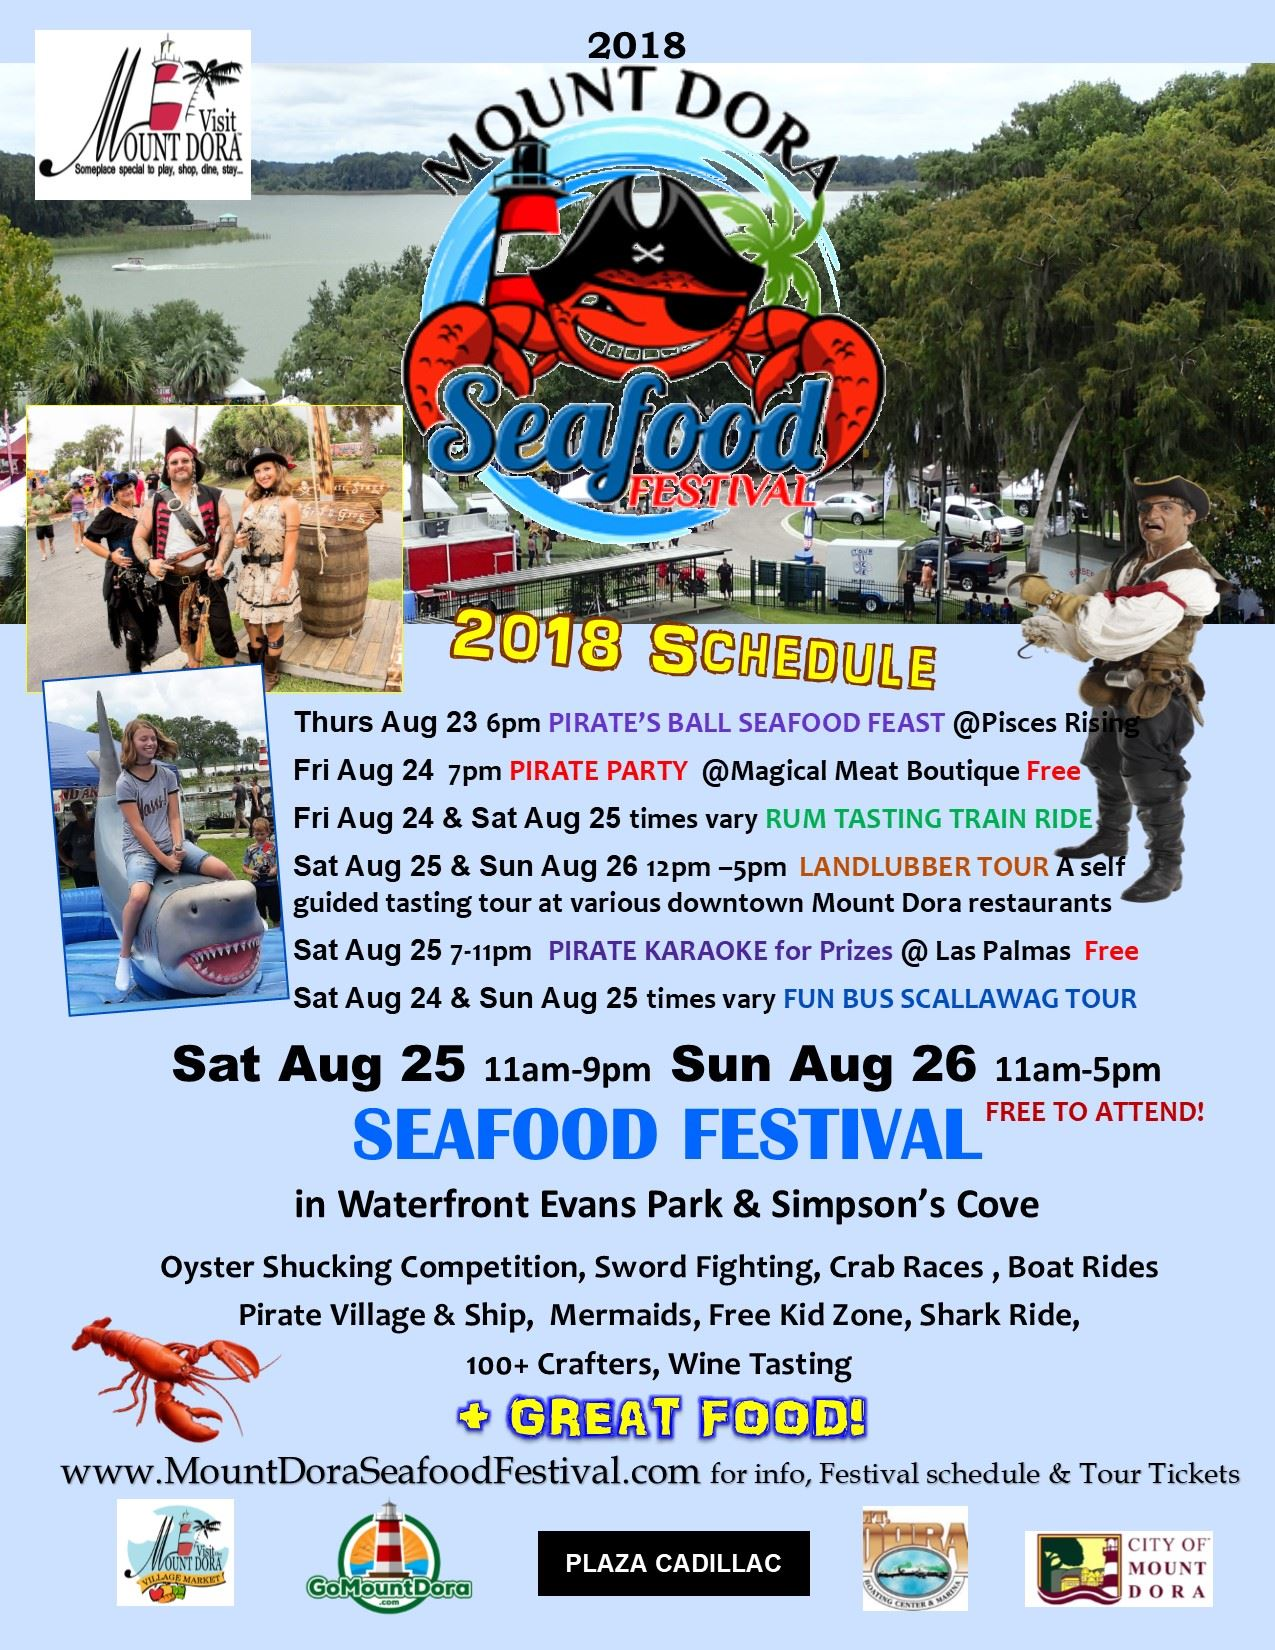 Seafood Festival Poster 2018